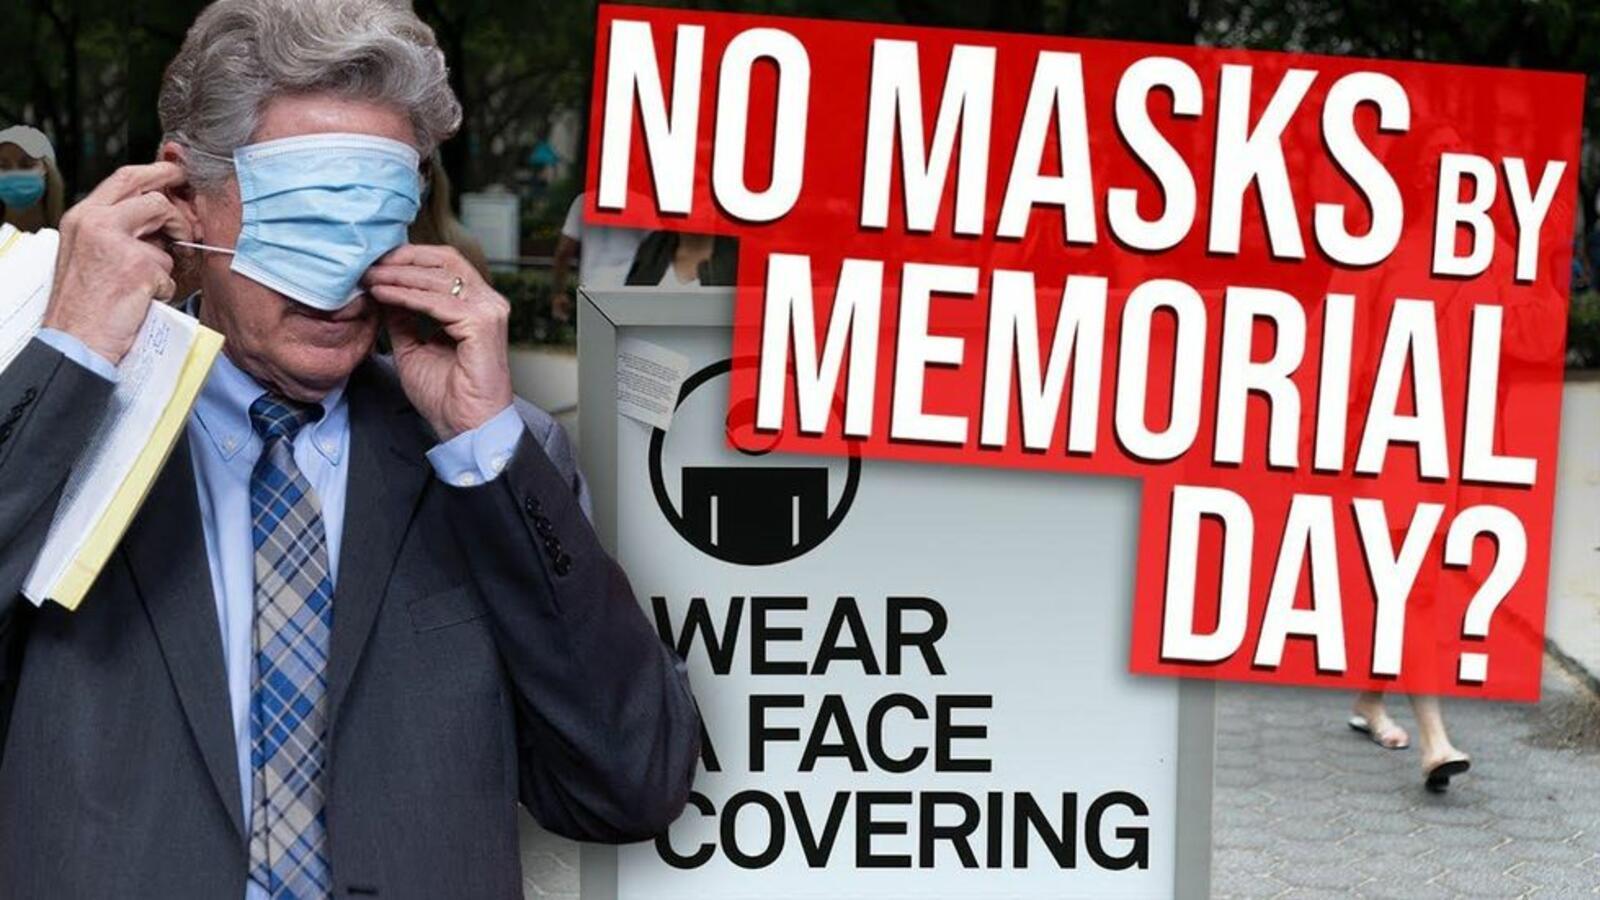 Will vaccinated Americans still need mask regulations by Memorial Day?